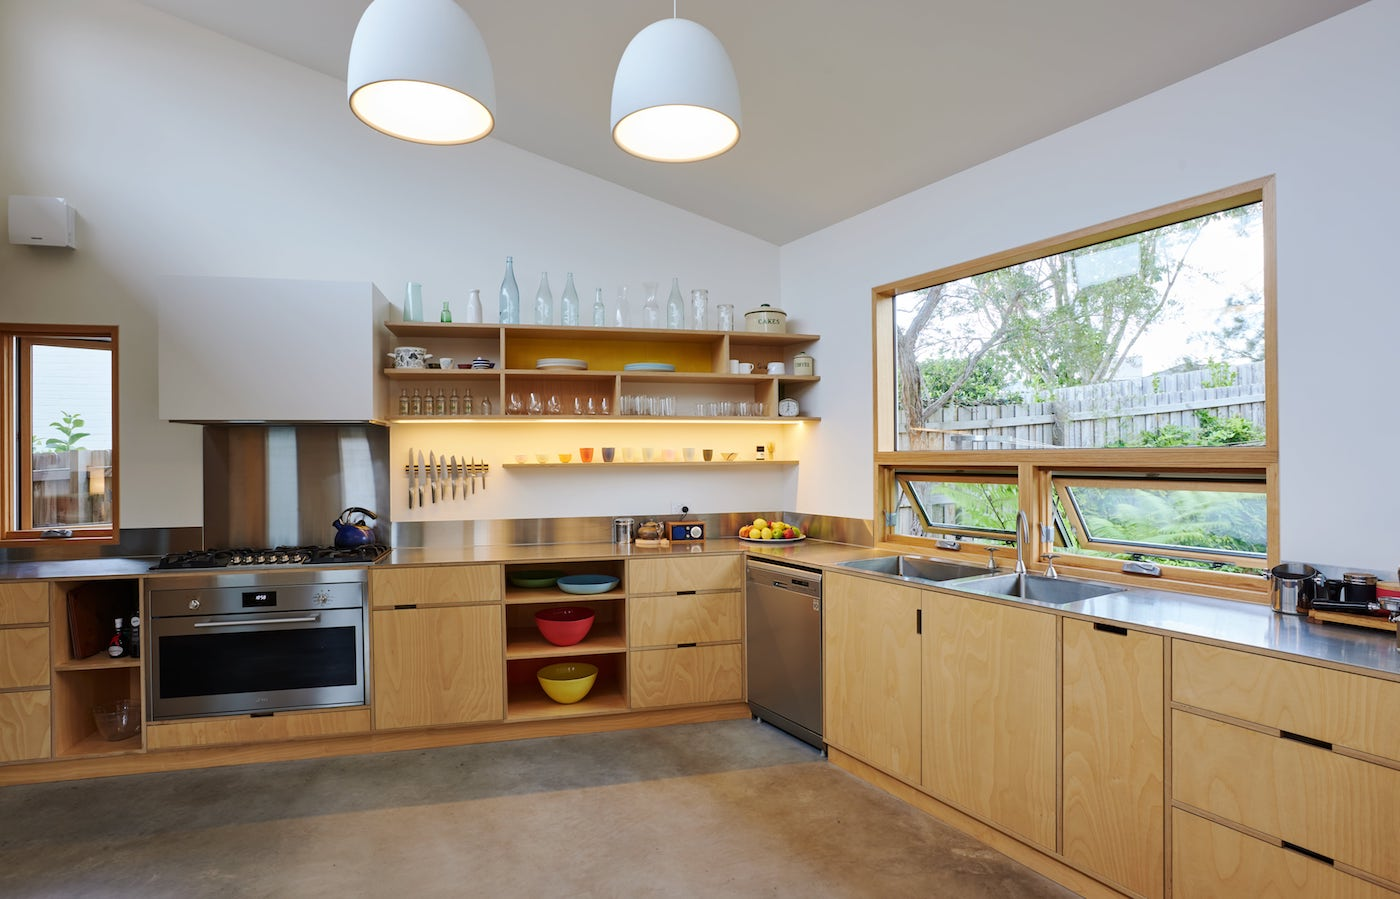 Timber kitchen with timber shelving